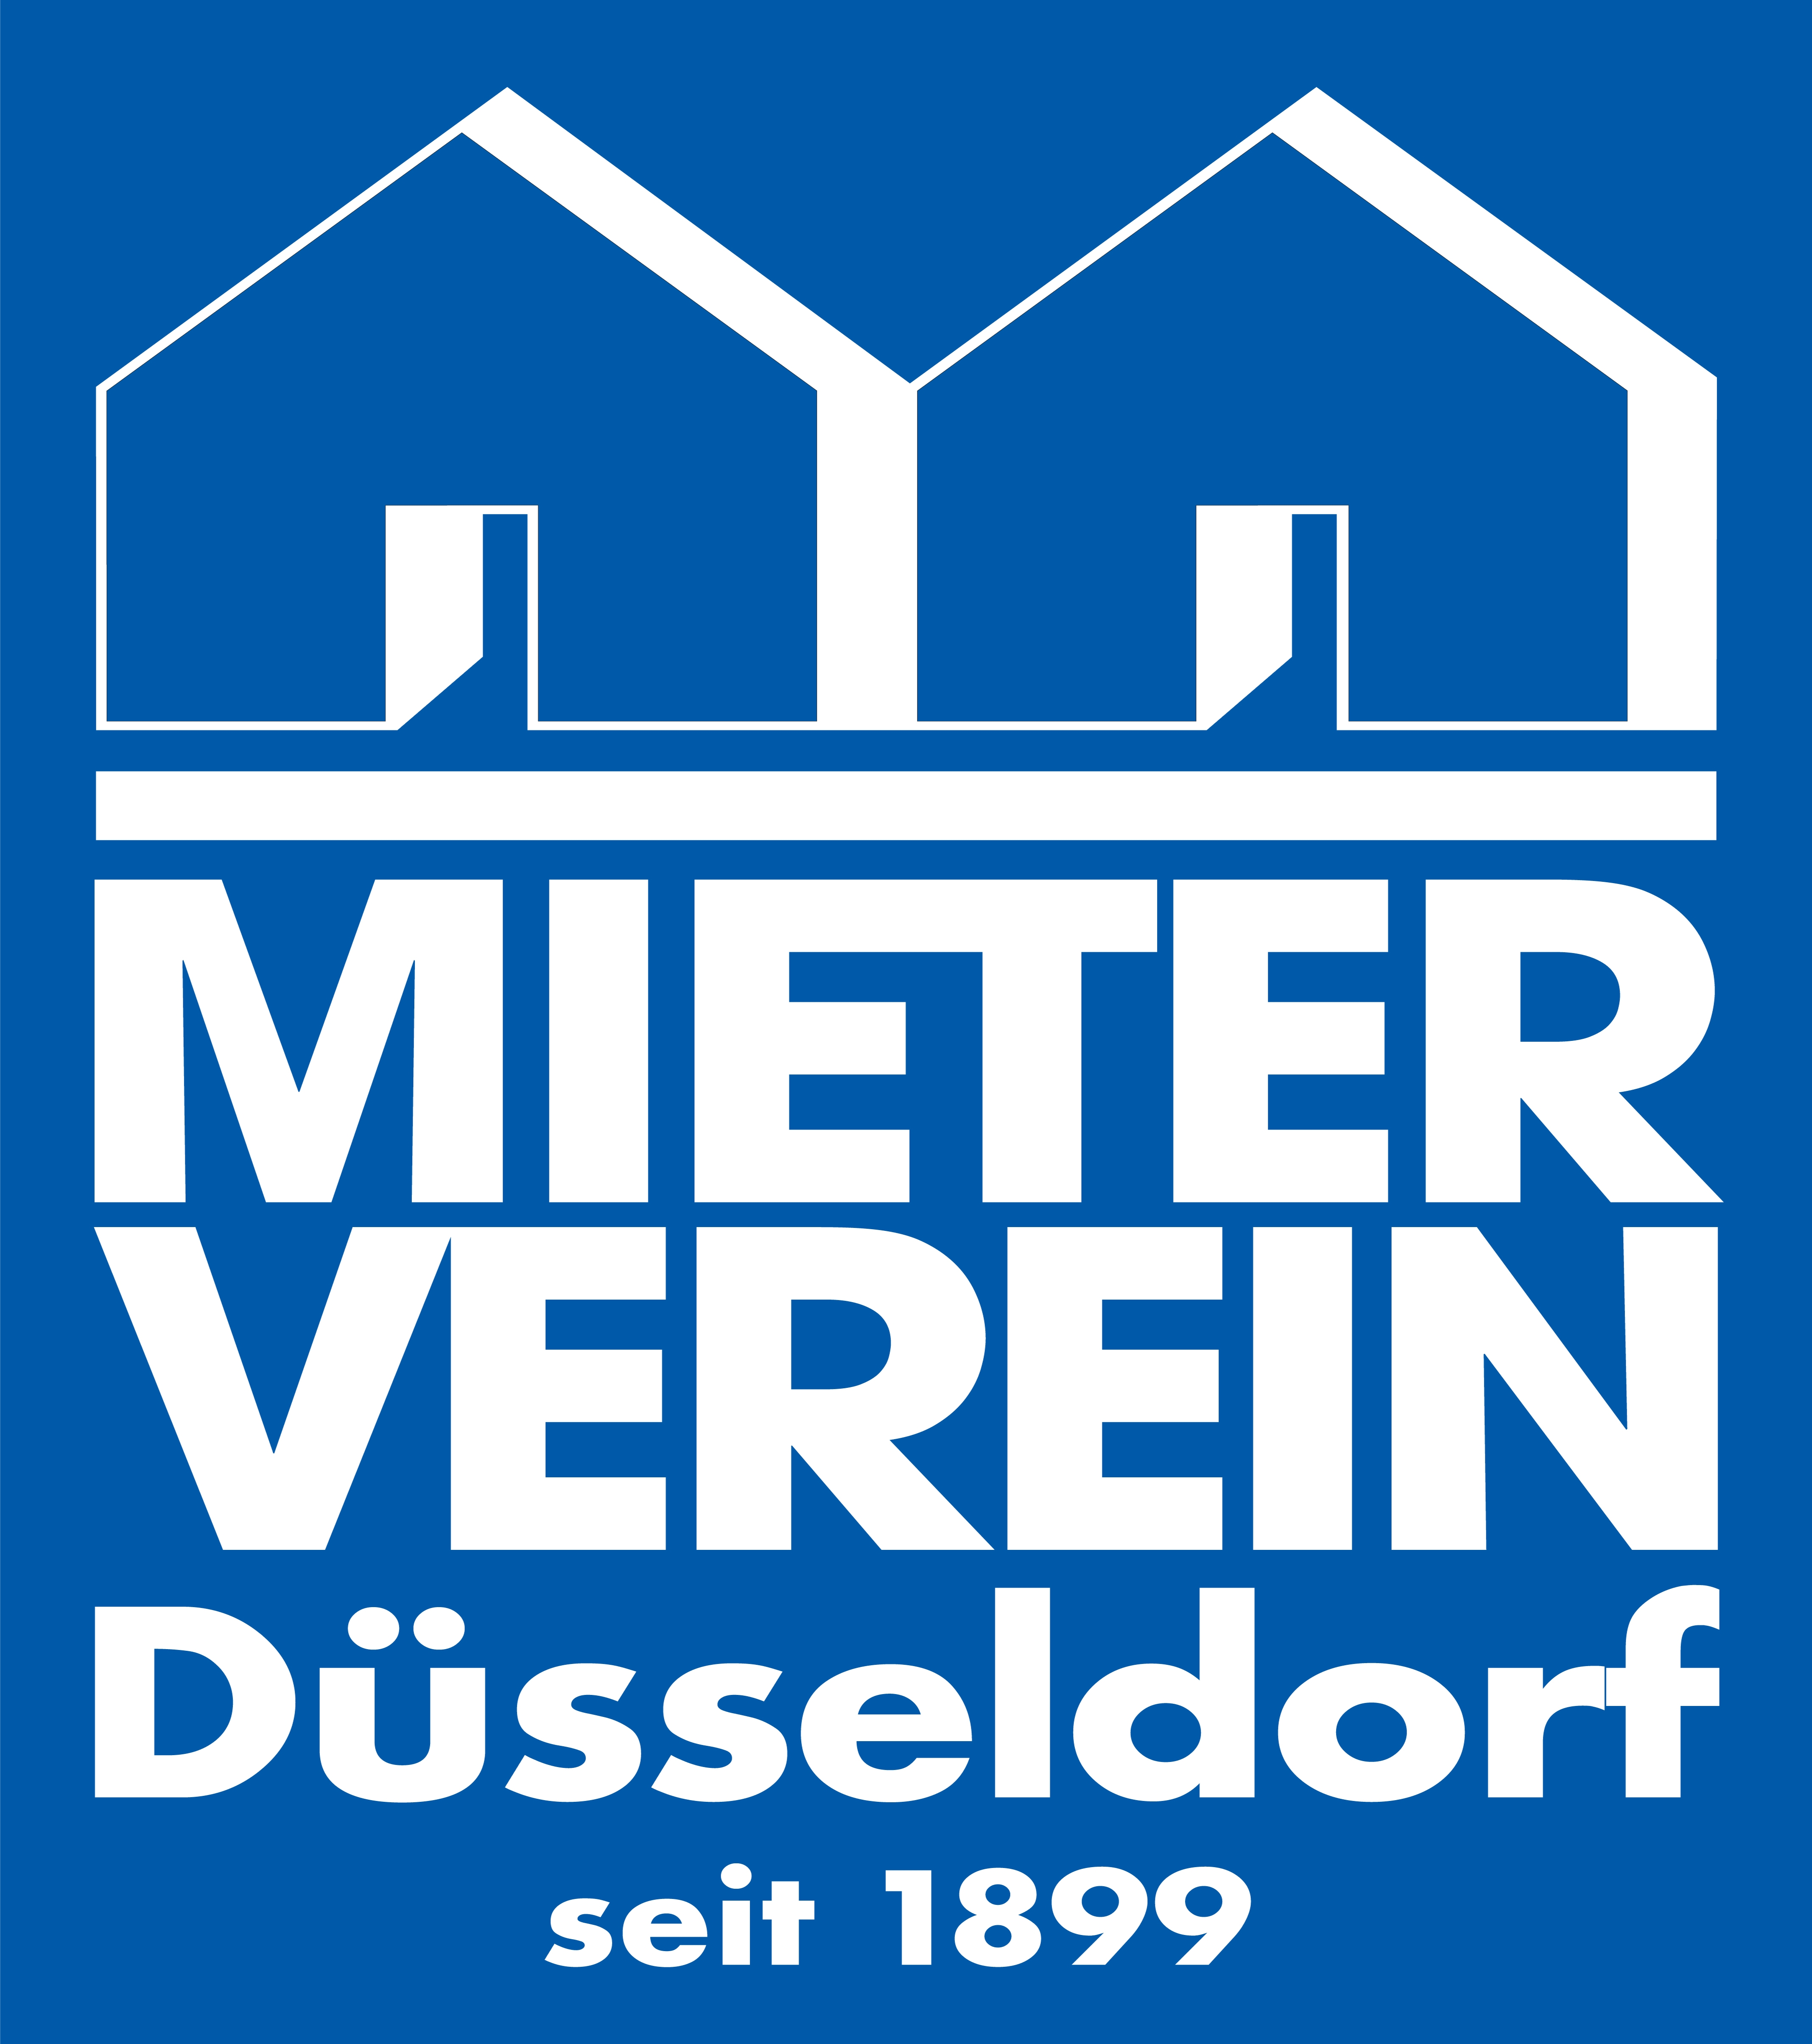 Mieterverein Düsseldorf e.V.